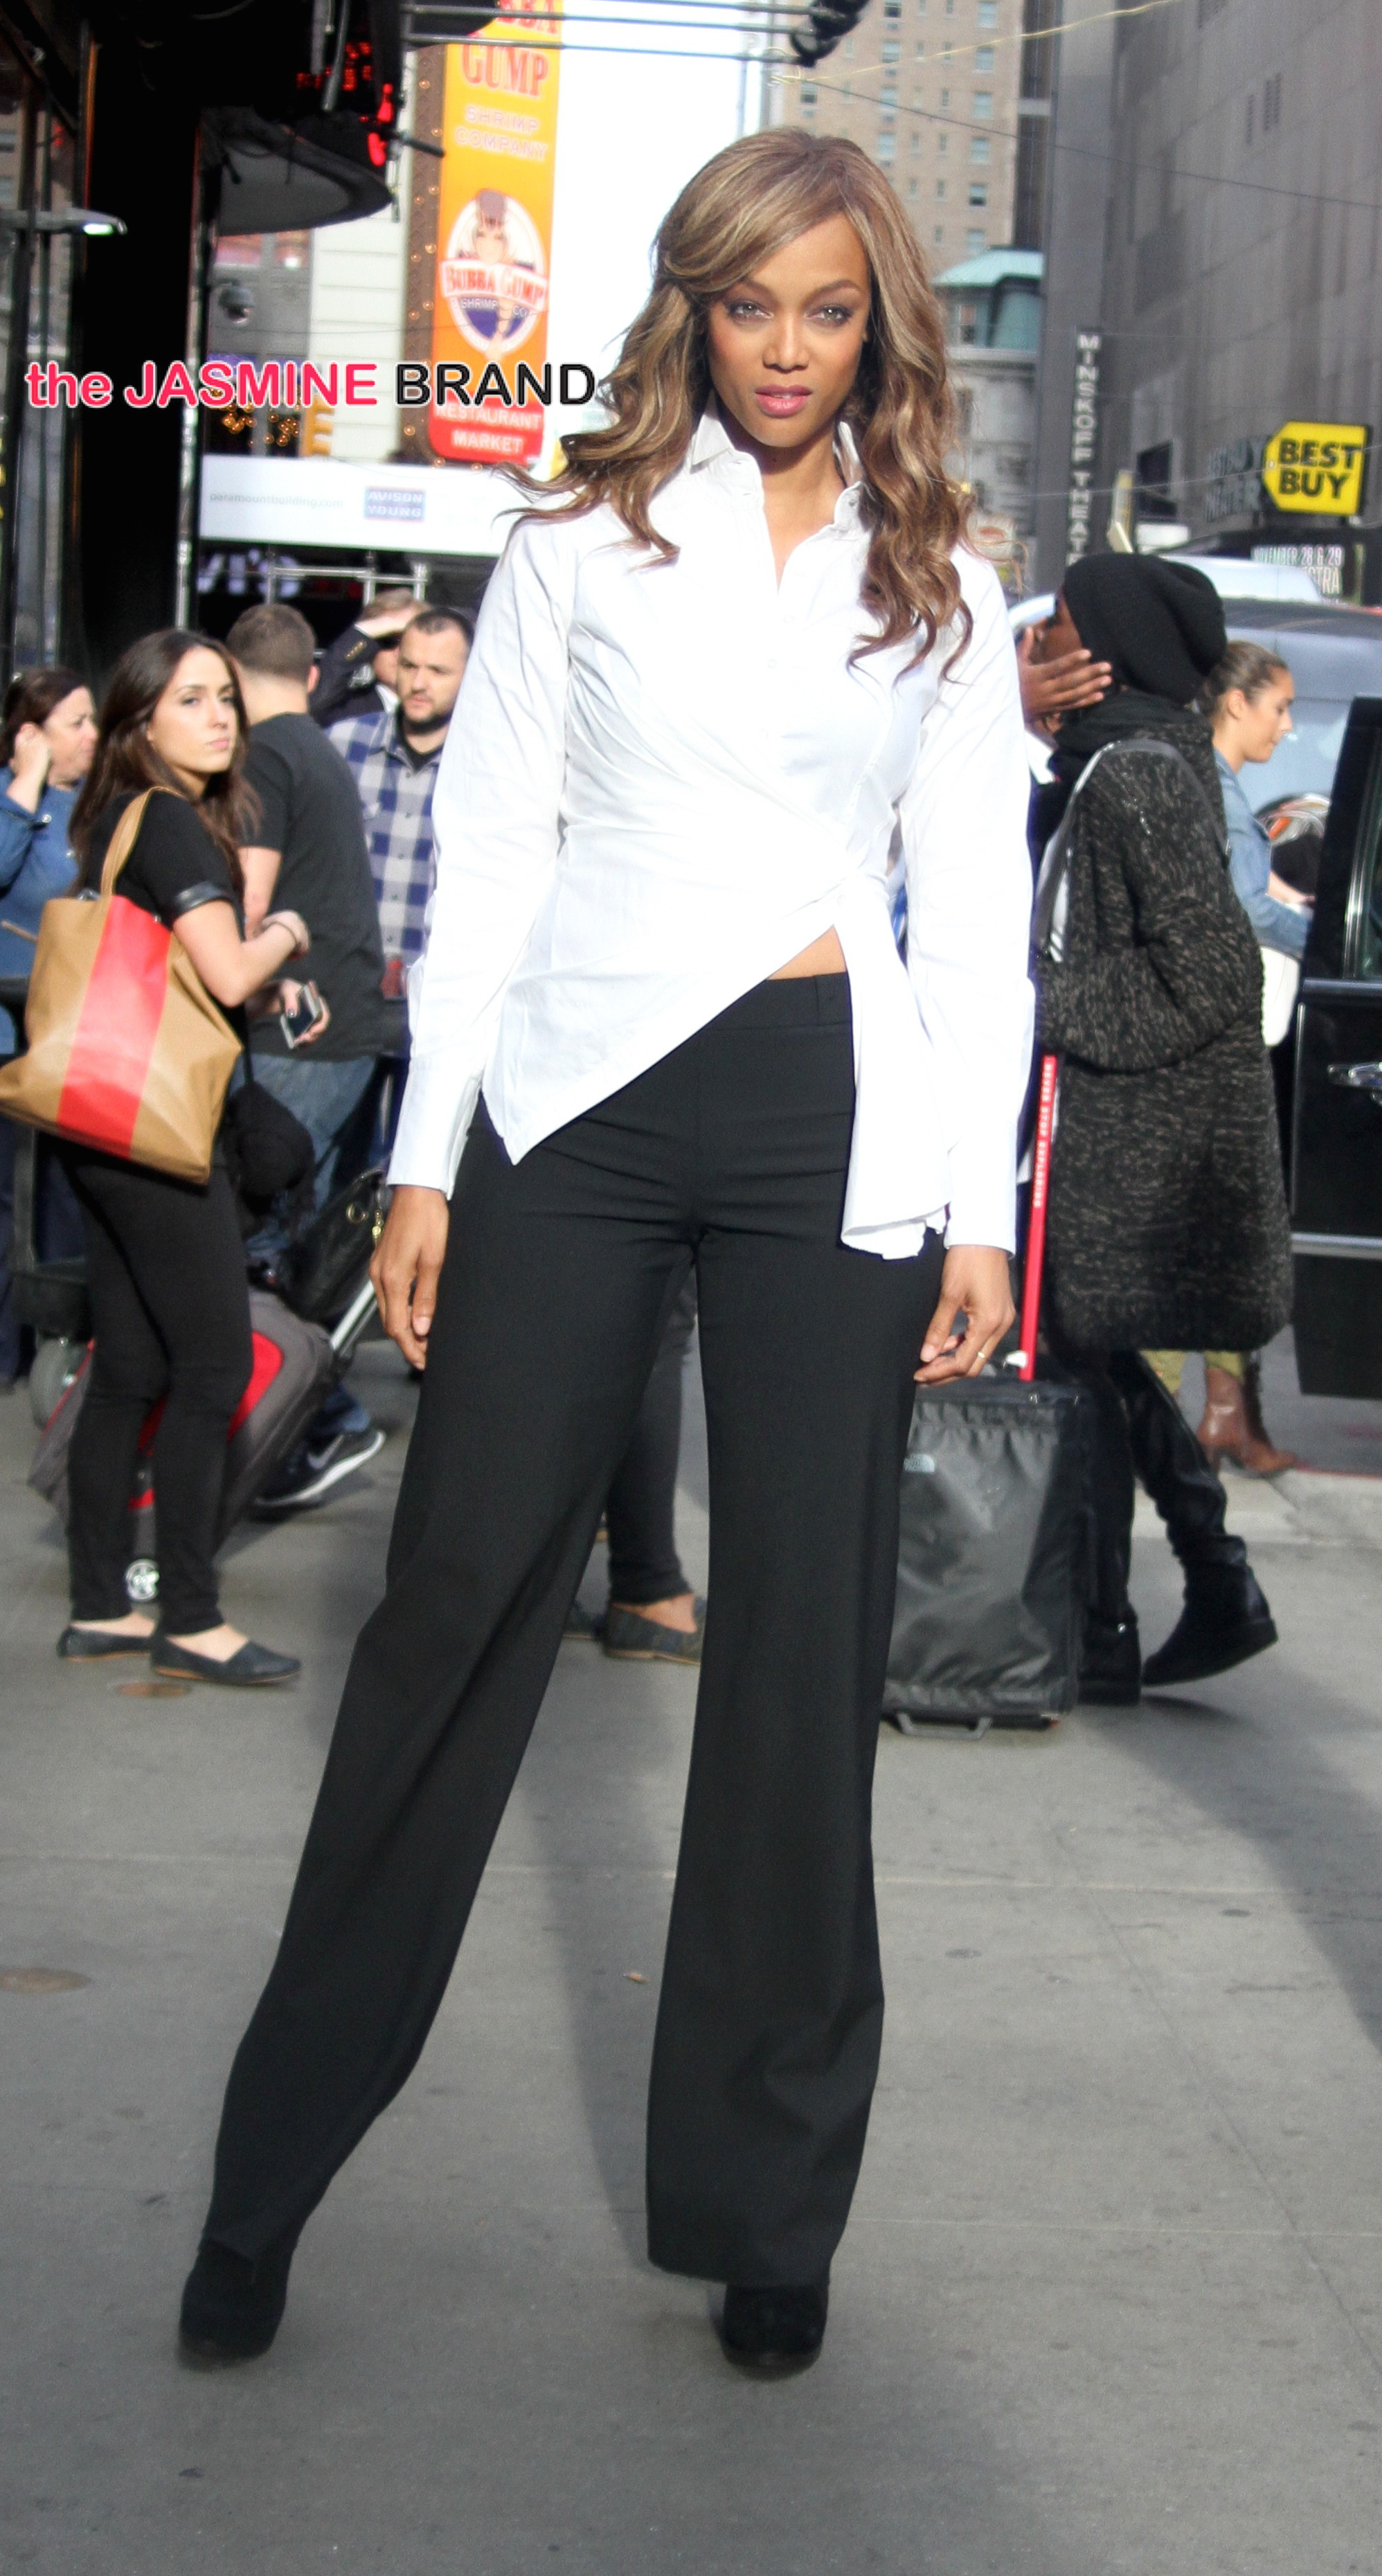 Tyra Banks at the 'Good Morning America' show in NYC